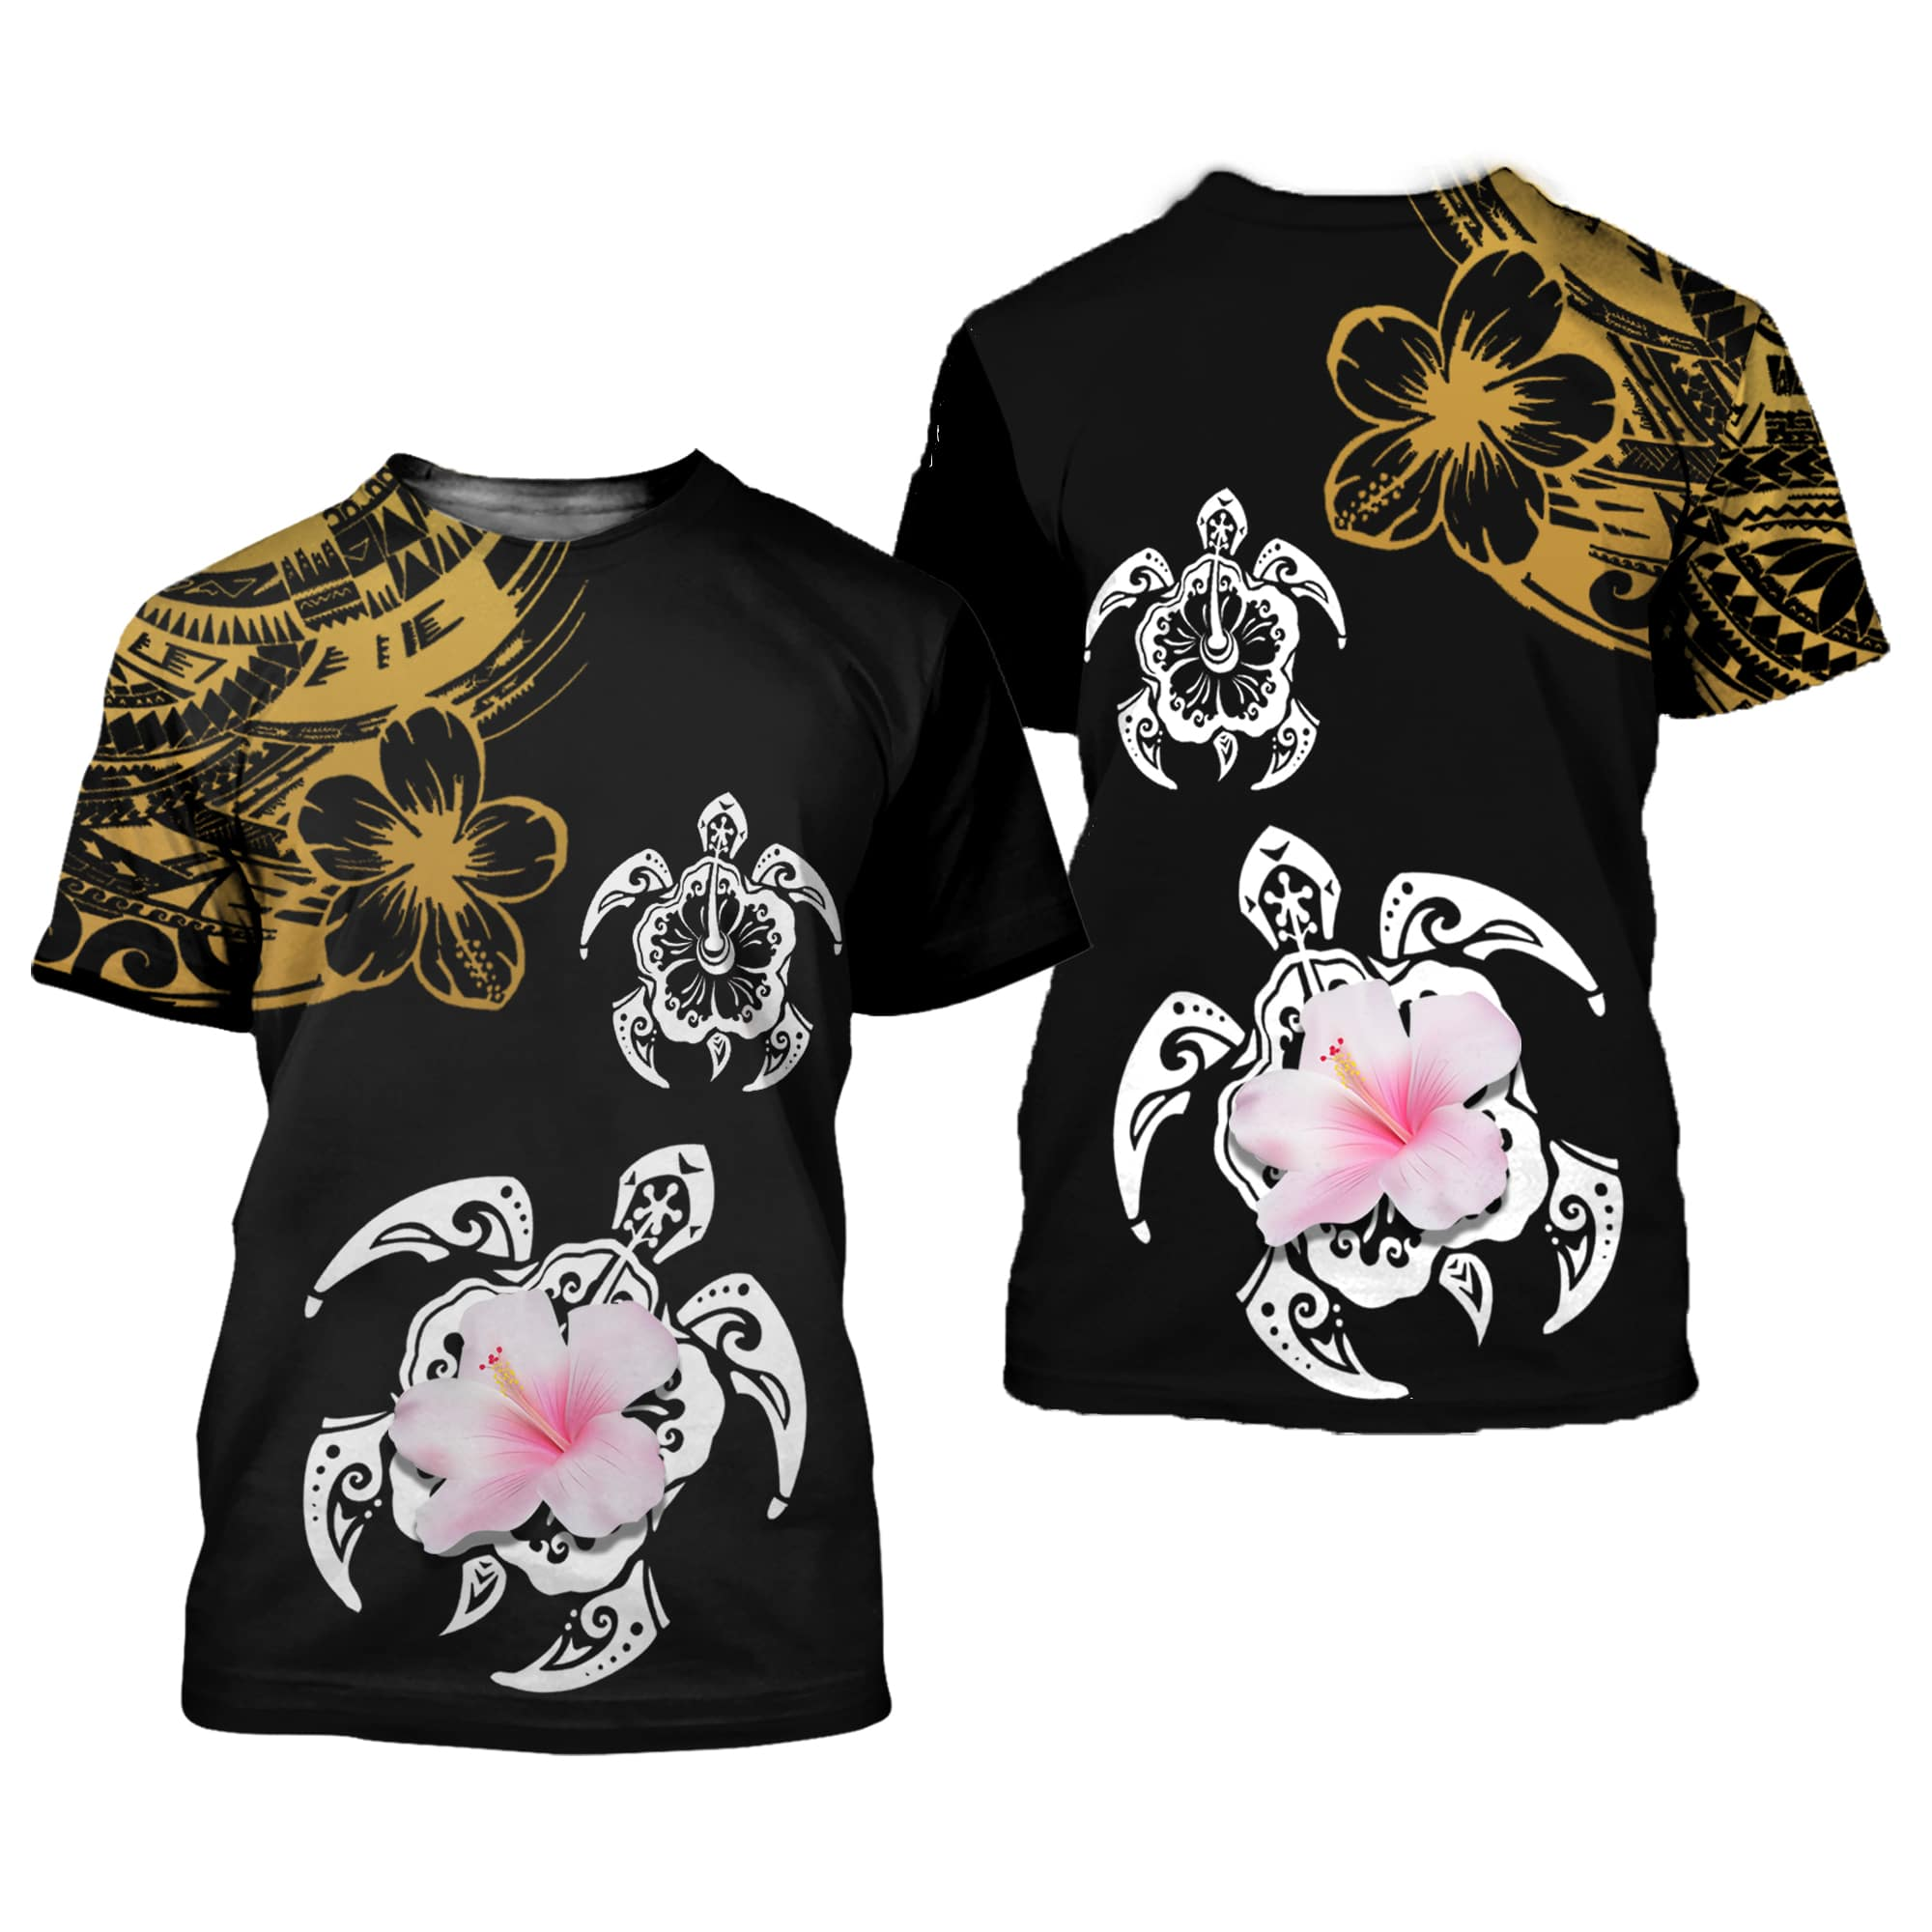 Amazing Polynesian Sea Turtle Tattoo 3D All Over Printed Shirts For Men And Women 13